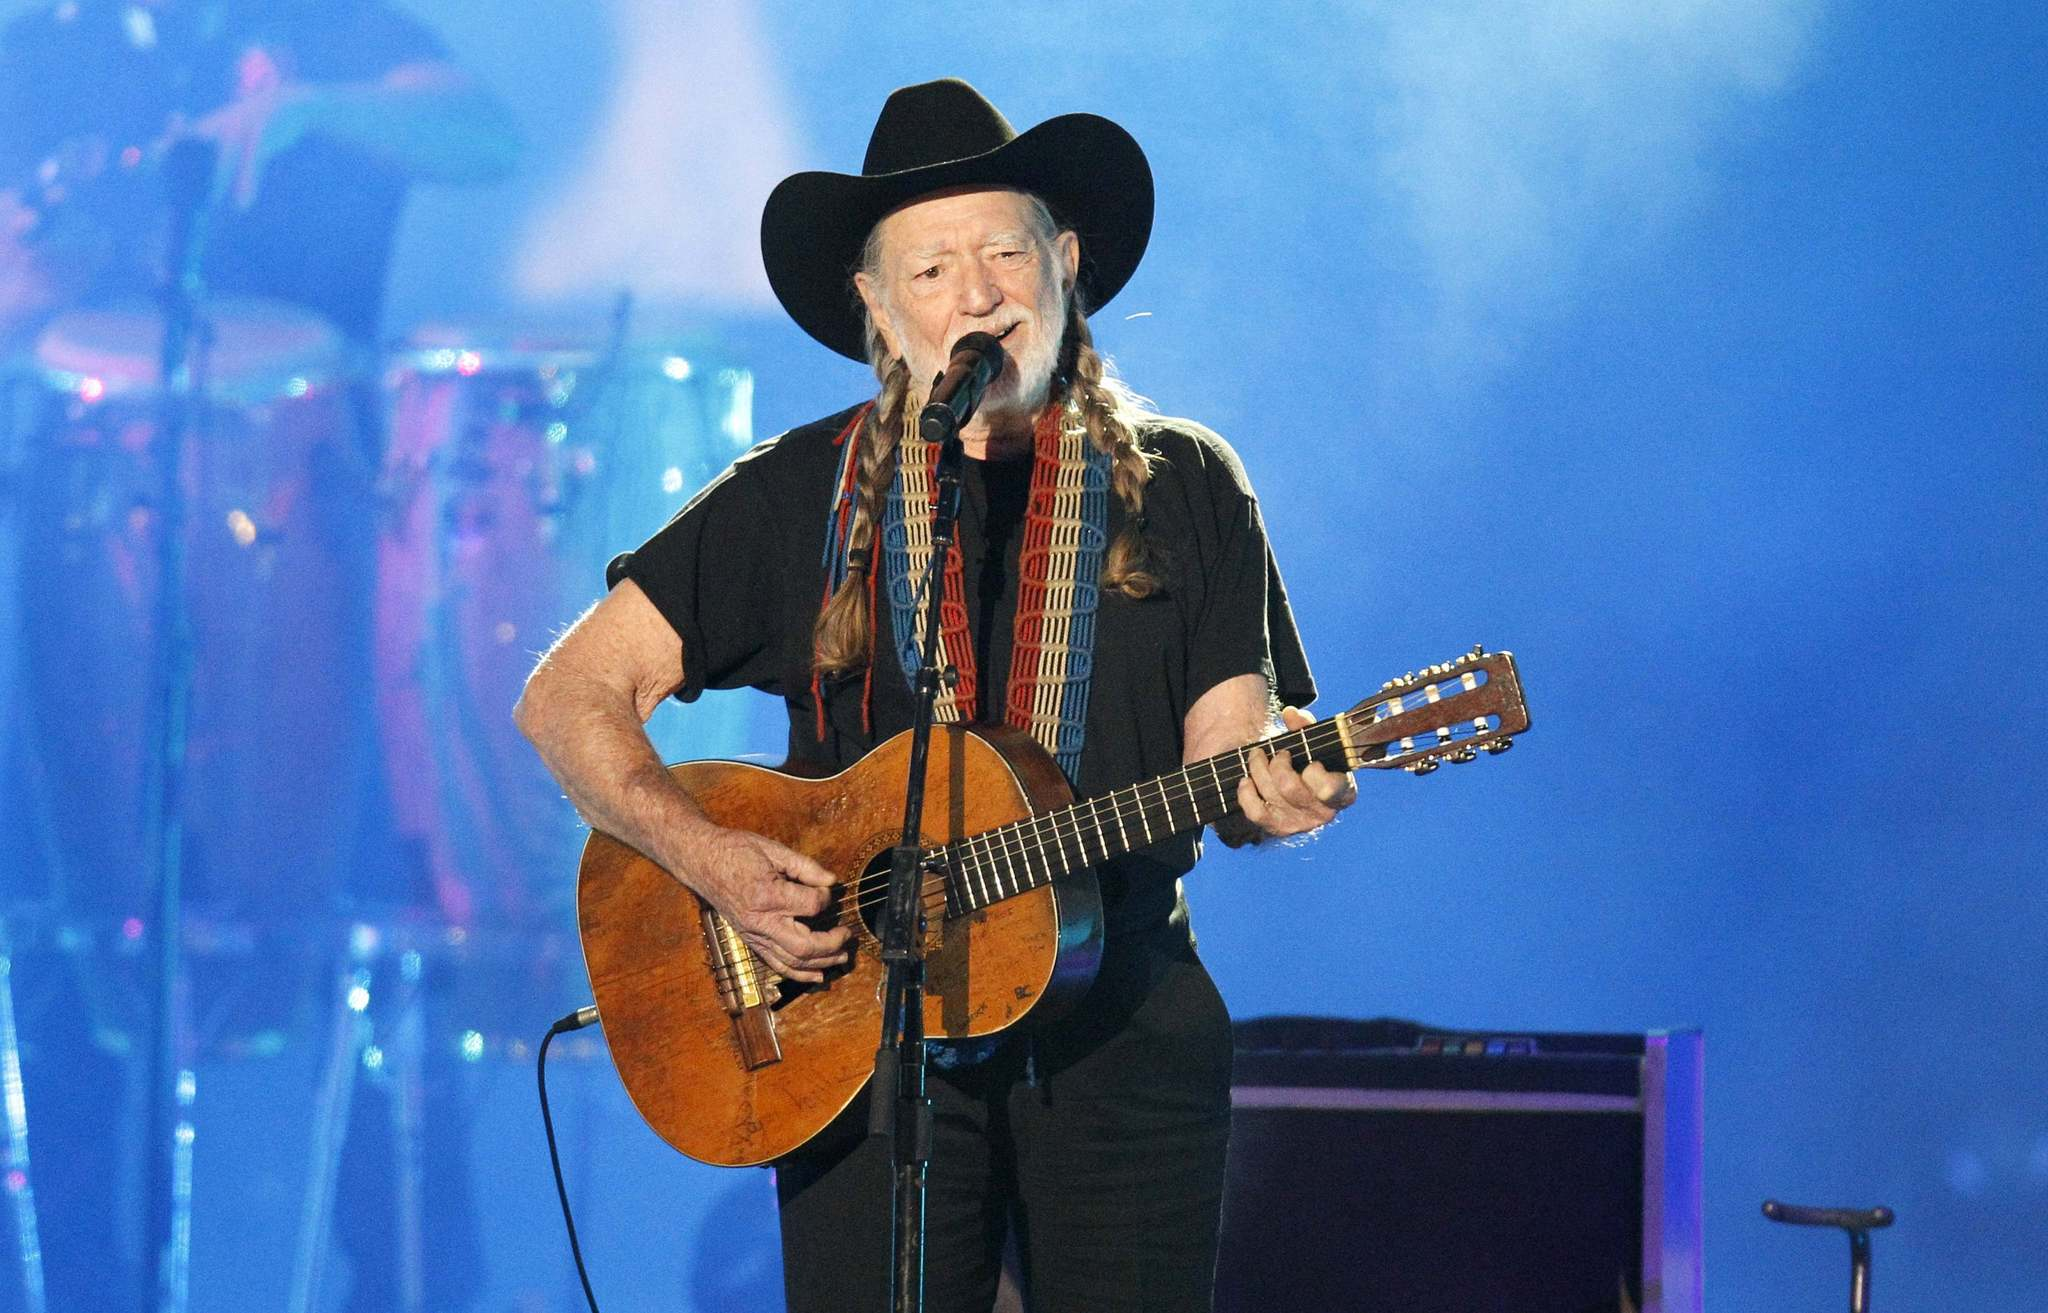 Singer Willie Nelson performs at the 2012 CMT Music Awards in Nashville, Tennessee, in this June 6, 2012, file photo. Country singer Willie Nelson's drummer broke his hip and two other band members suffered minor injuries after their bus hit a highway overpass pillar in heavy rains in East Texas early November 23, 2013 morning, according to the Texas Department of Public Safety. REUTERS/Harrison McClary/Files (UNITED STATES - Tags: ENTERTAINMENT DISASTER HEALTH) ORG XMIT: TOR600